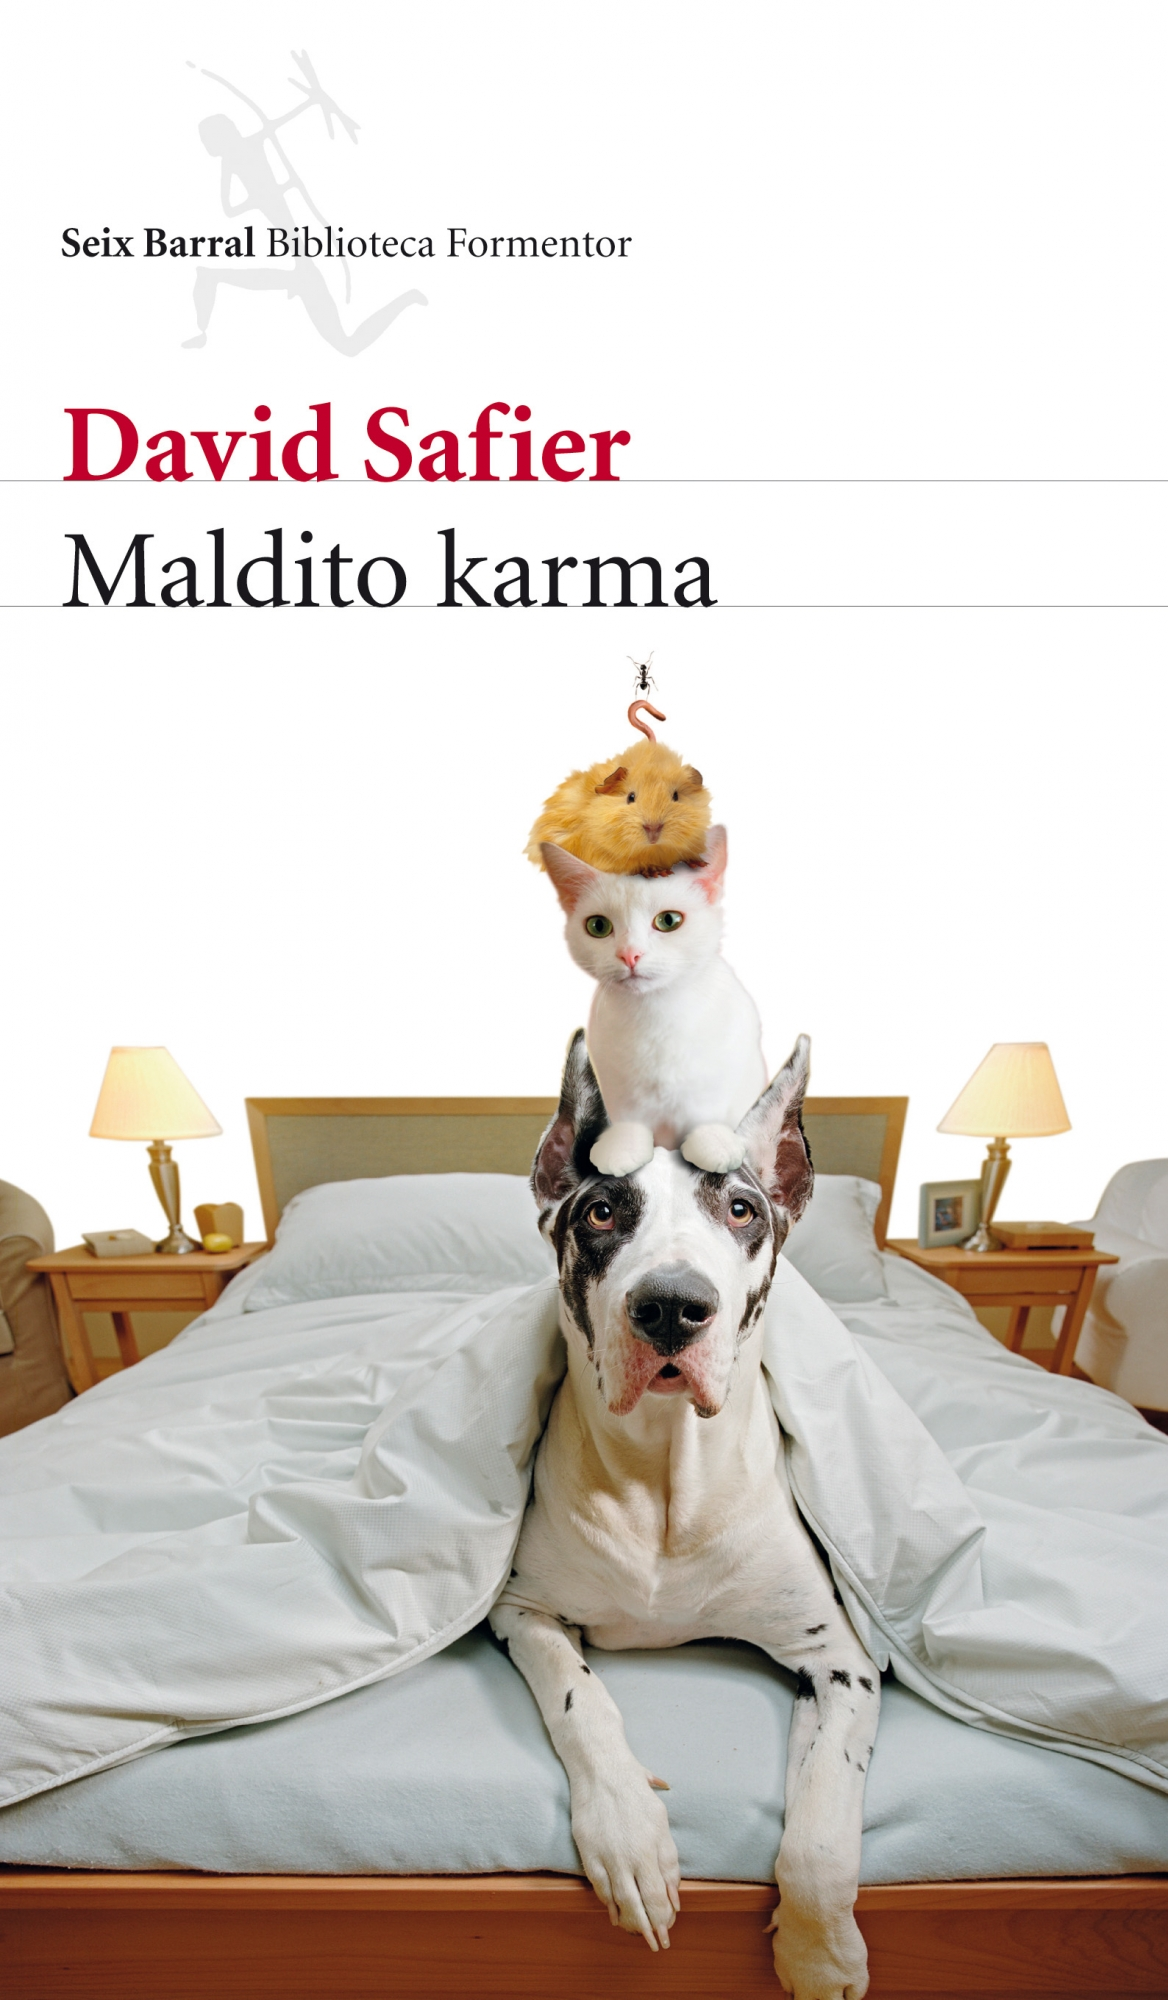 Maldito Karma Libro Descargar Gratis 301 Moved Permanently